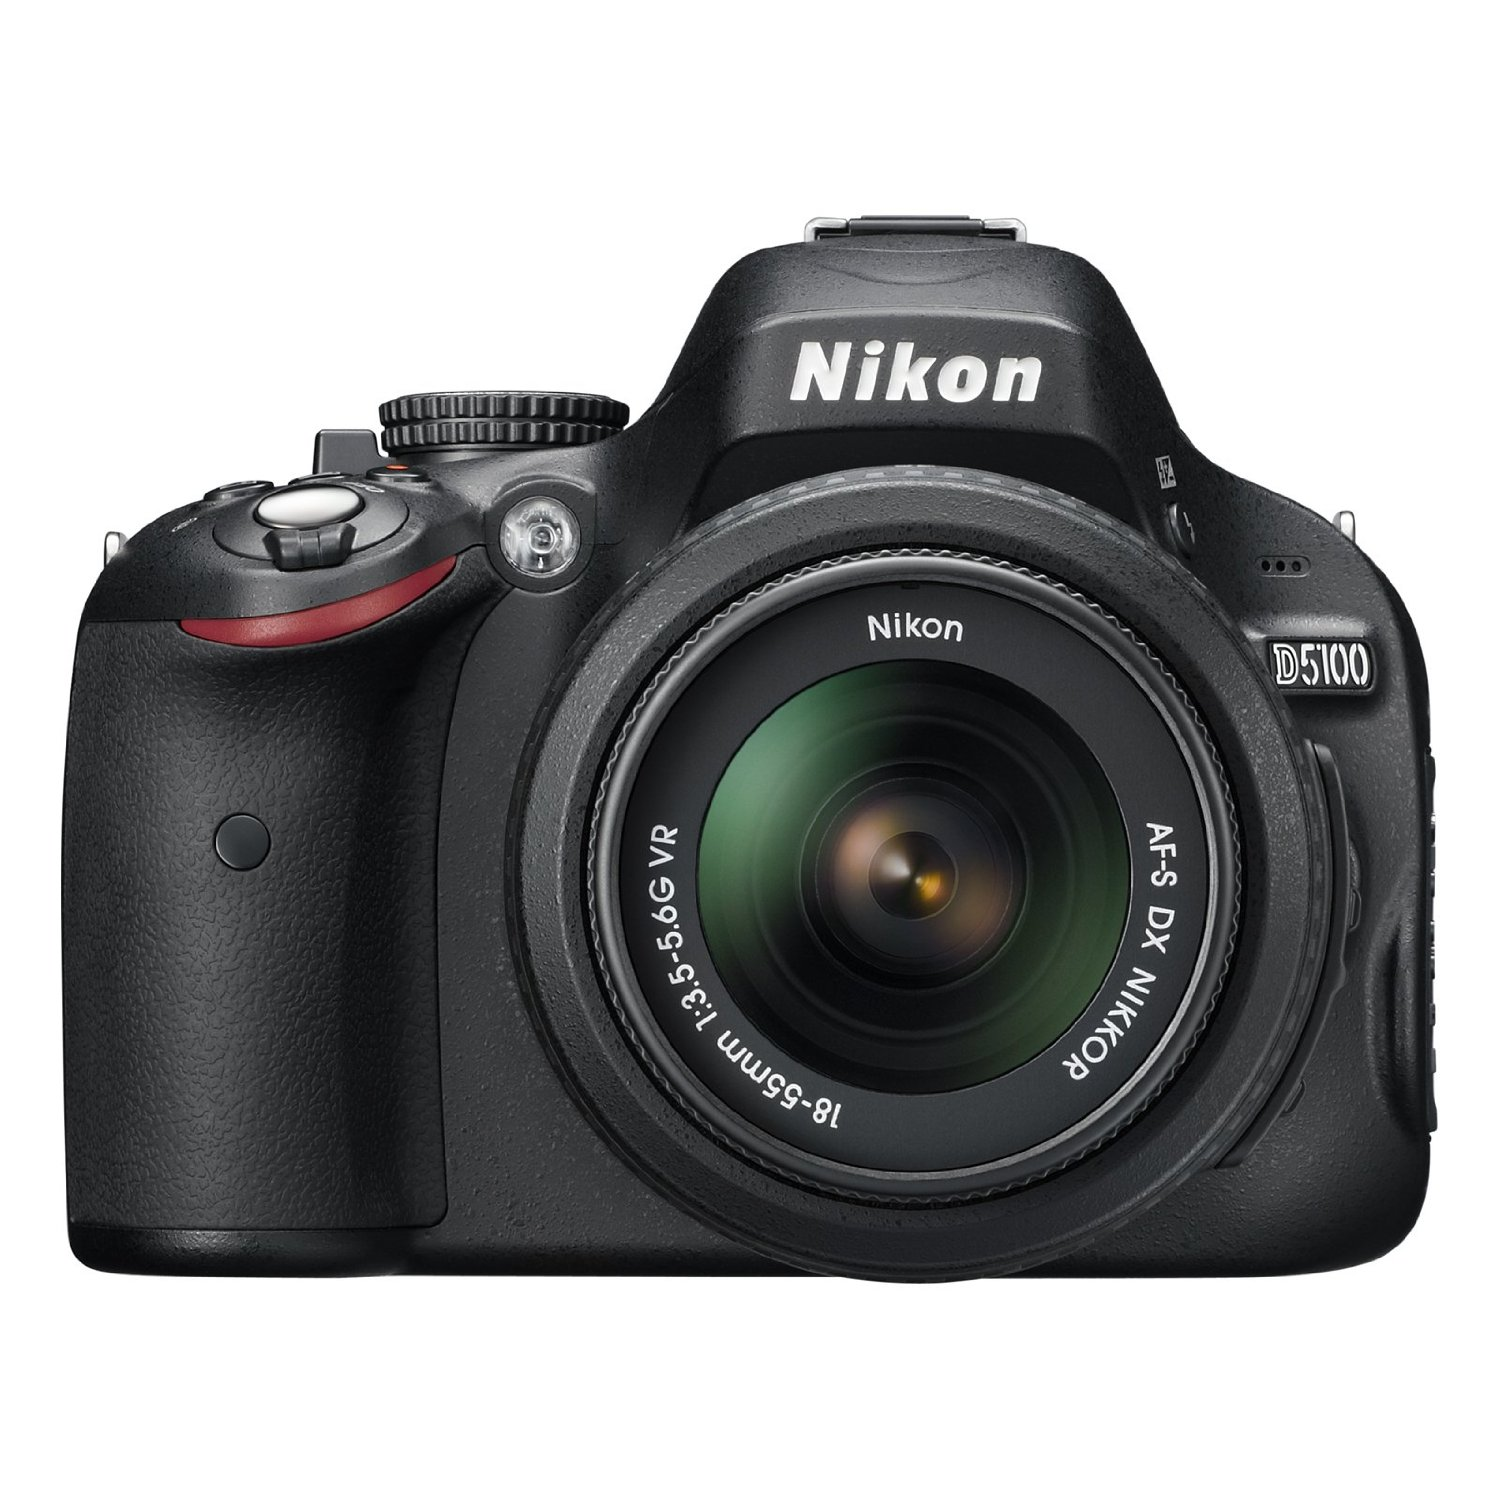 Nikon D5100 16.2MP CMOS Digital SLR Camera Reviews